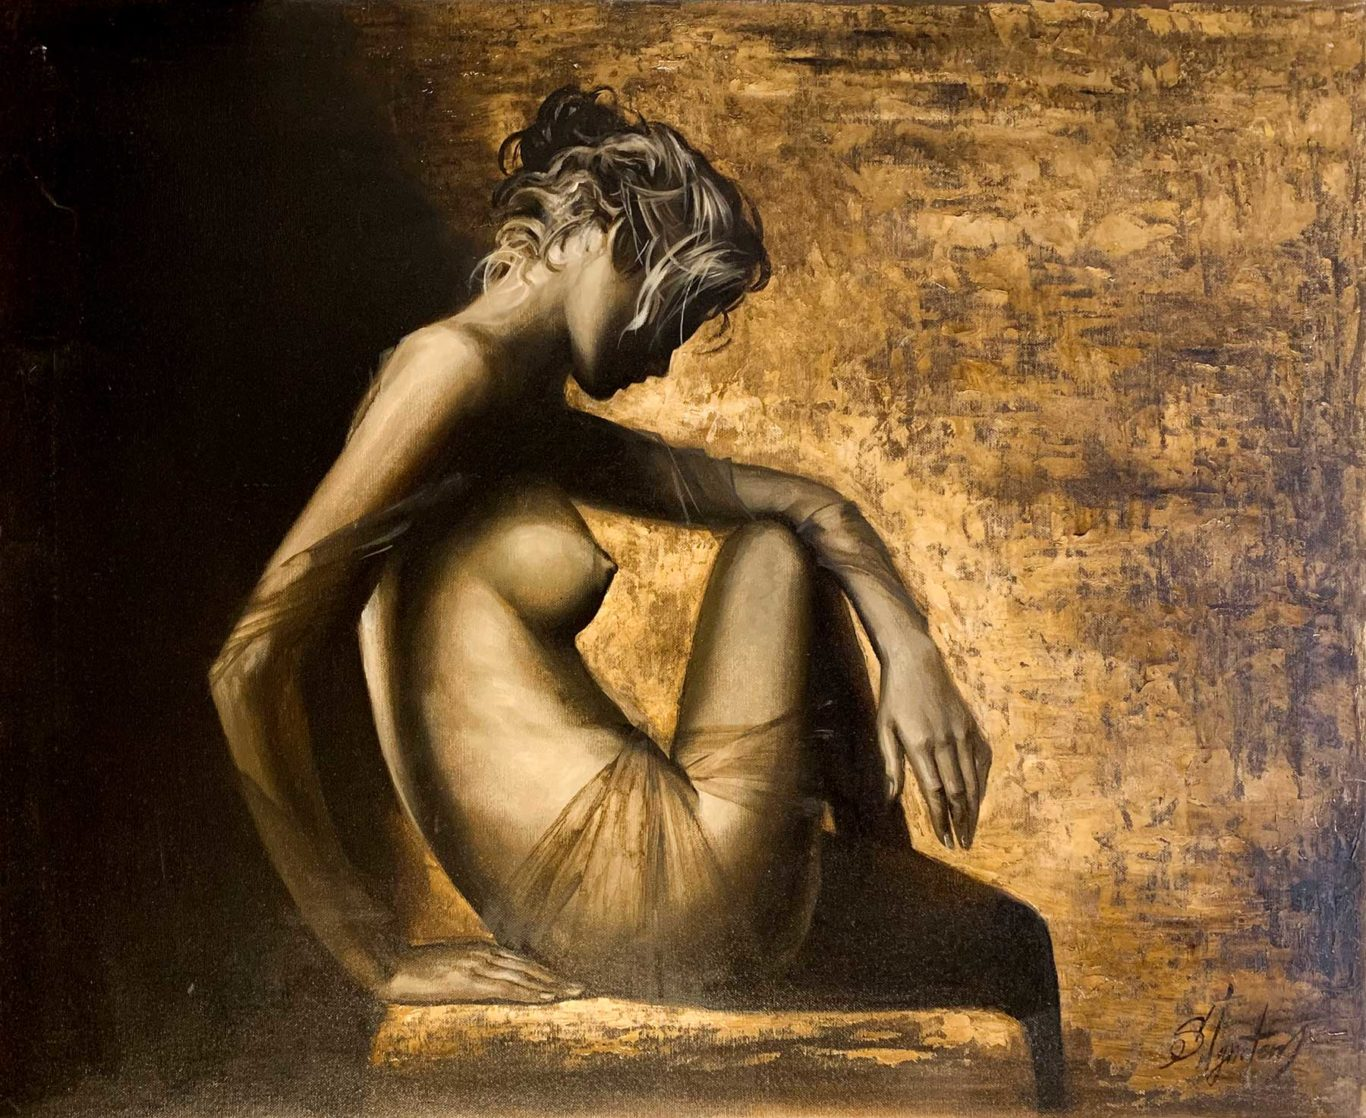 Beautiful woman nude seating on table, Original oil painting by Artist Serge Ignatenko